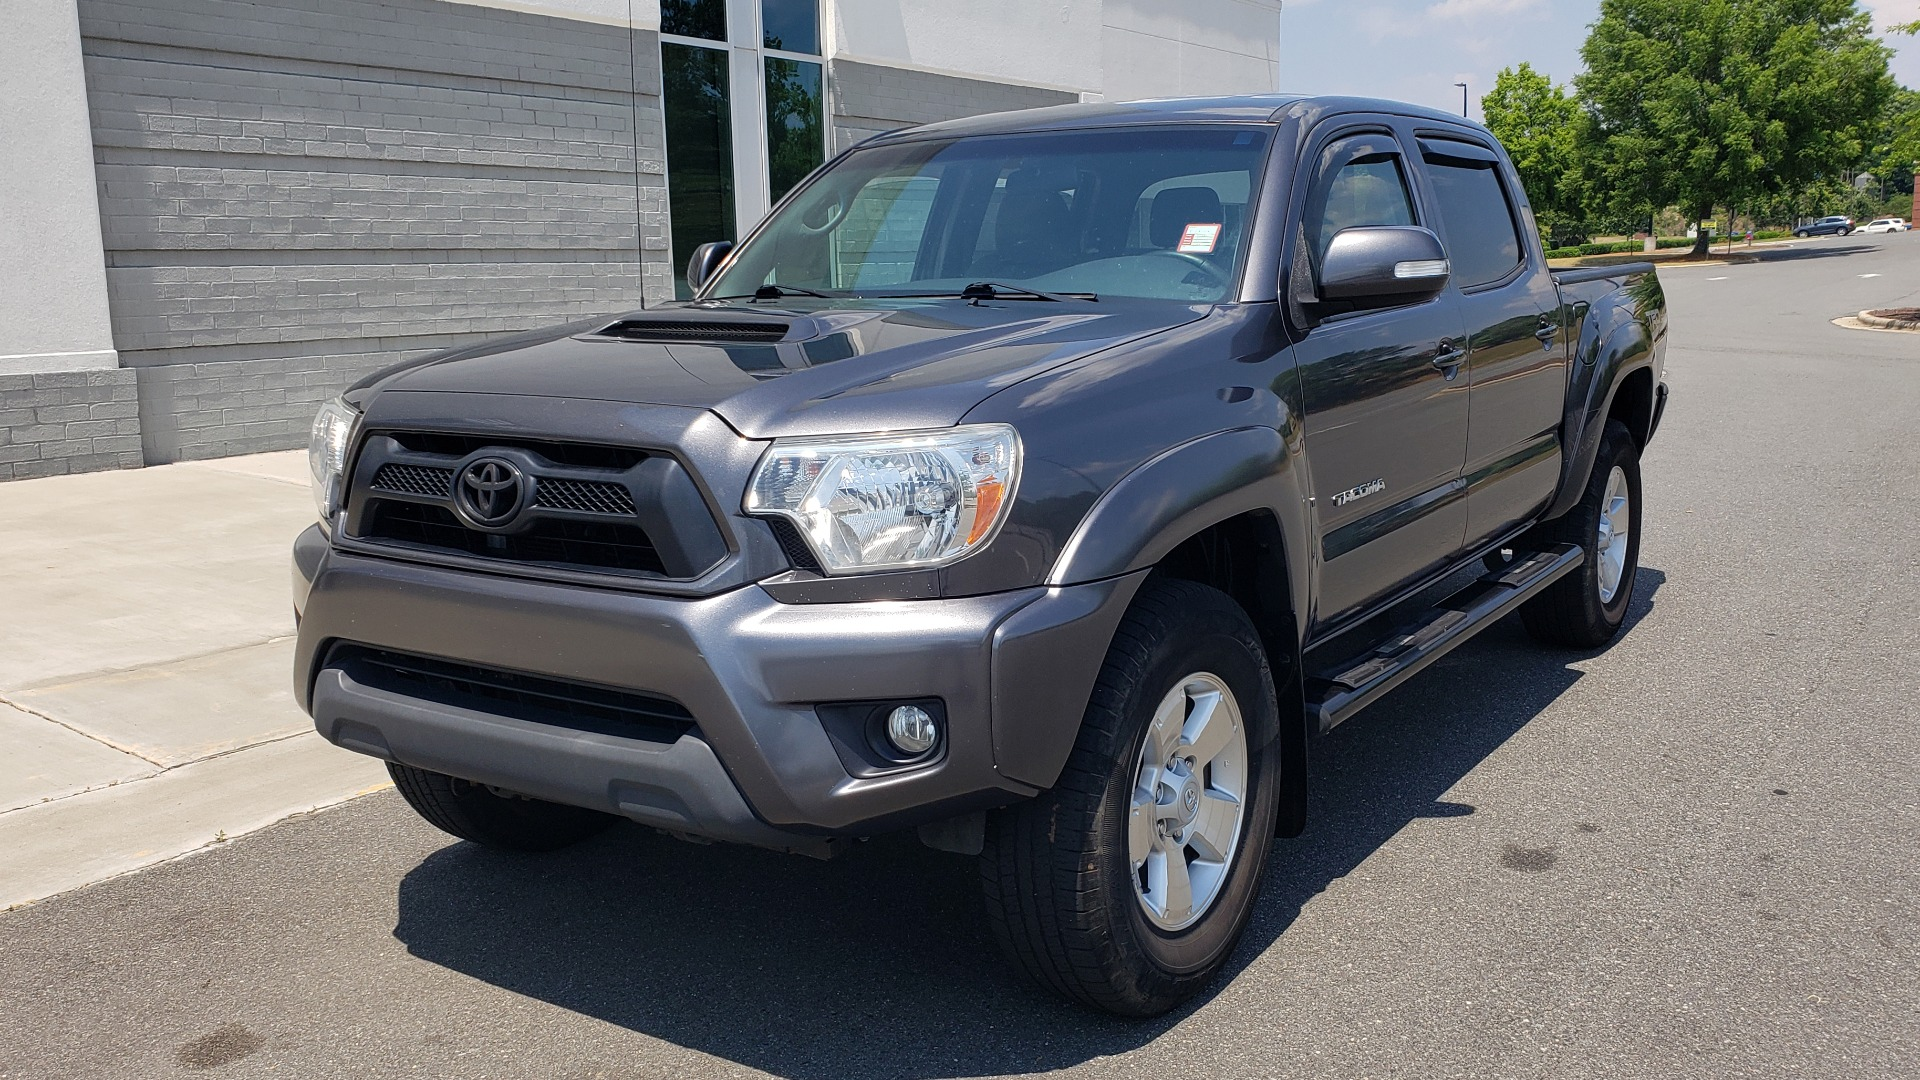 Used 2014 Toyota TACOMA PRERUNNER DOUBLECAB / TRD SPORT / V6 / 5-SPD AUTO / TOW PKG for sale $21,595 at Formula Imports in Charlotte NC 28227 1